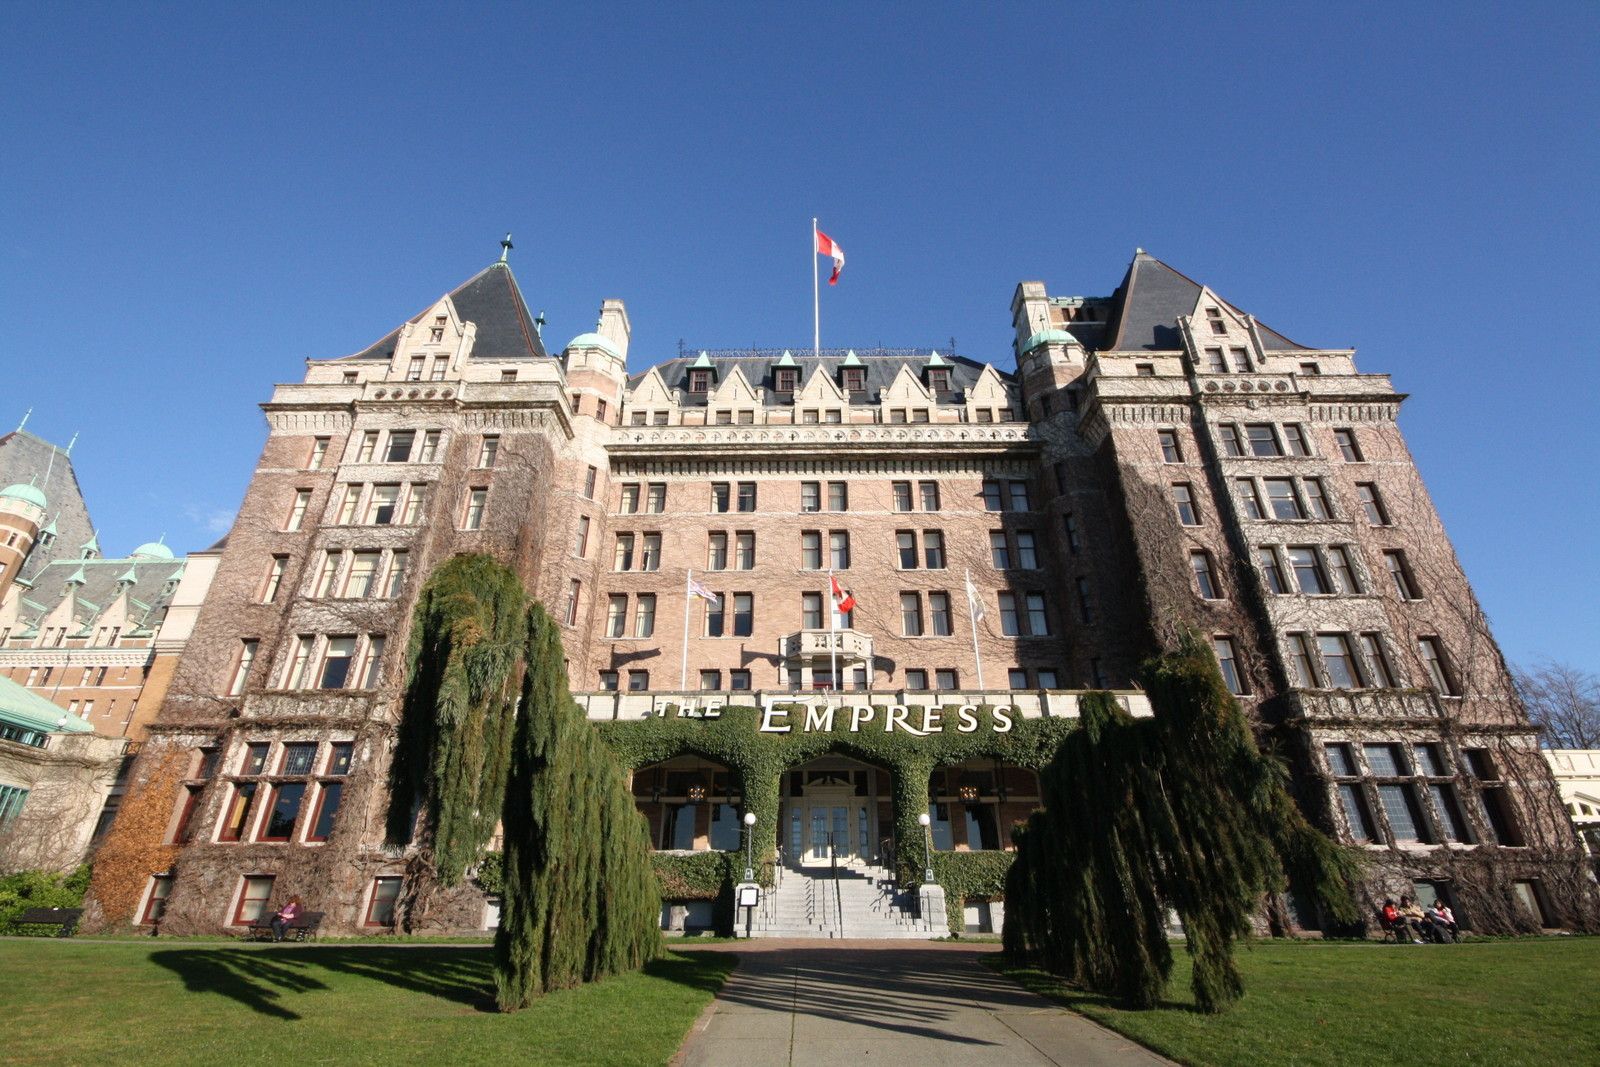 The Canadian flag flies high above the (newly renovated) Fairmont Empress Hotel in Victoria, B.C. JIM BYERS PHOTO